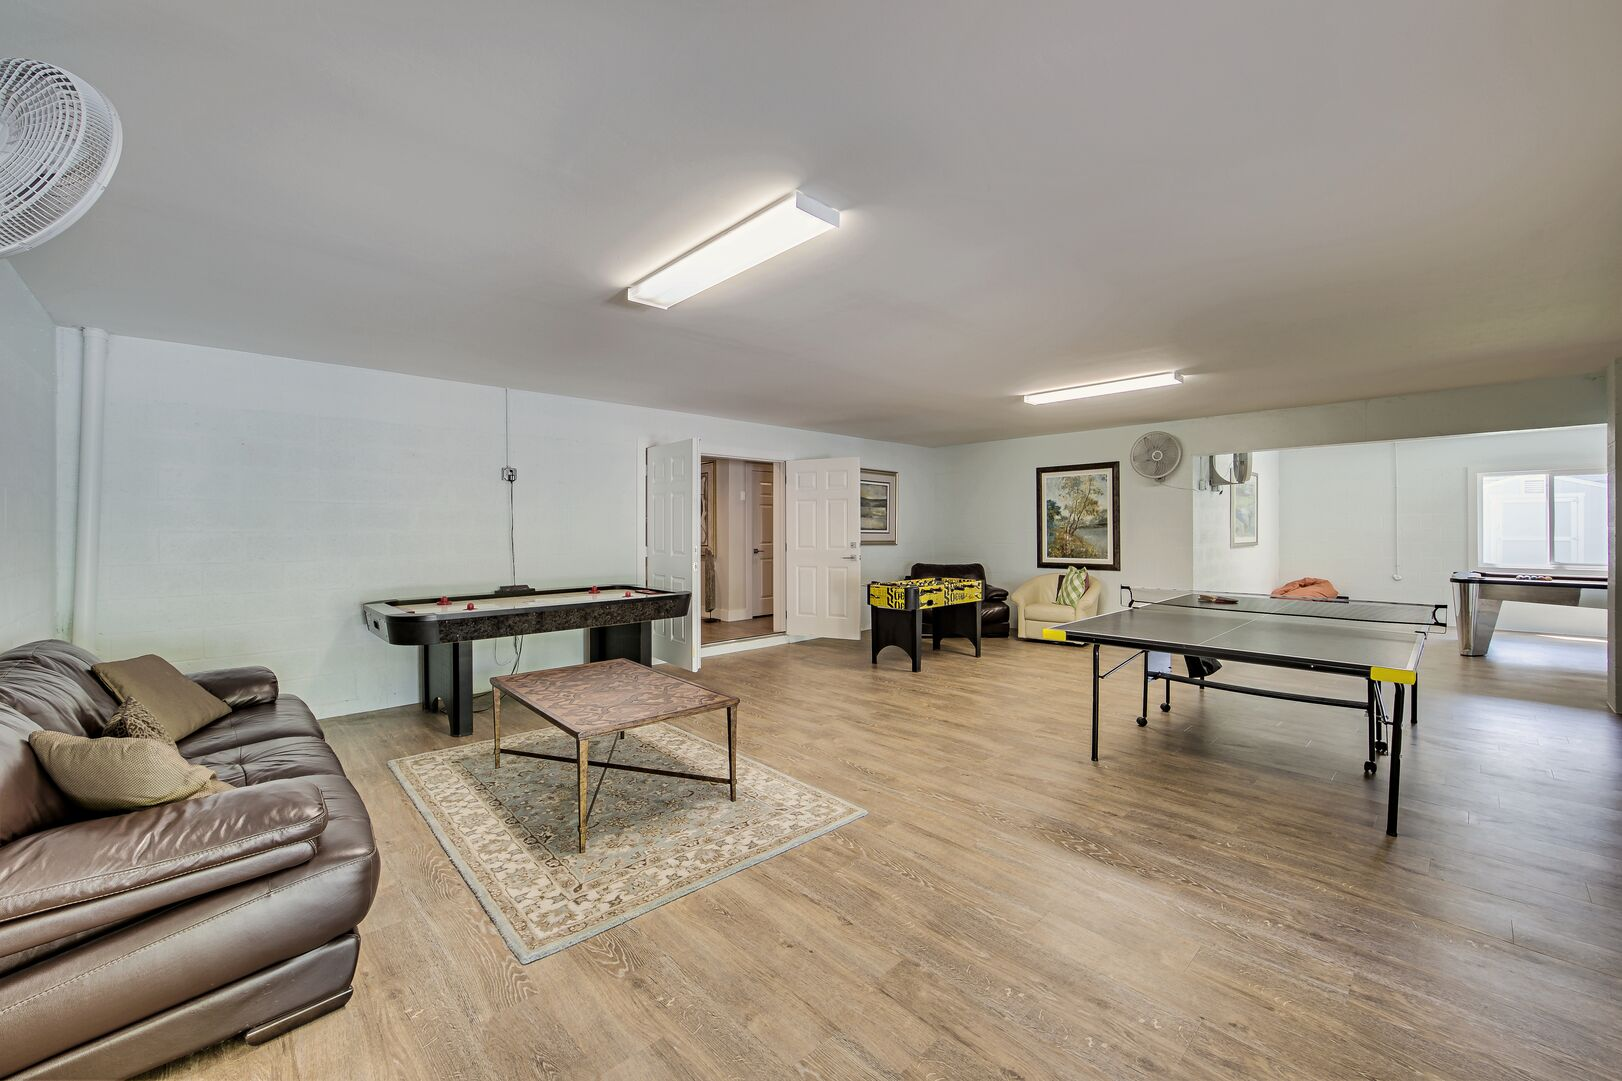 Game room with shuffleboard and ping pong